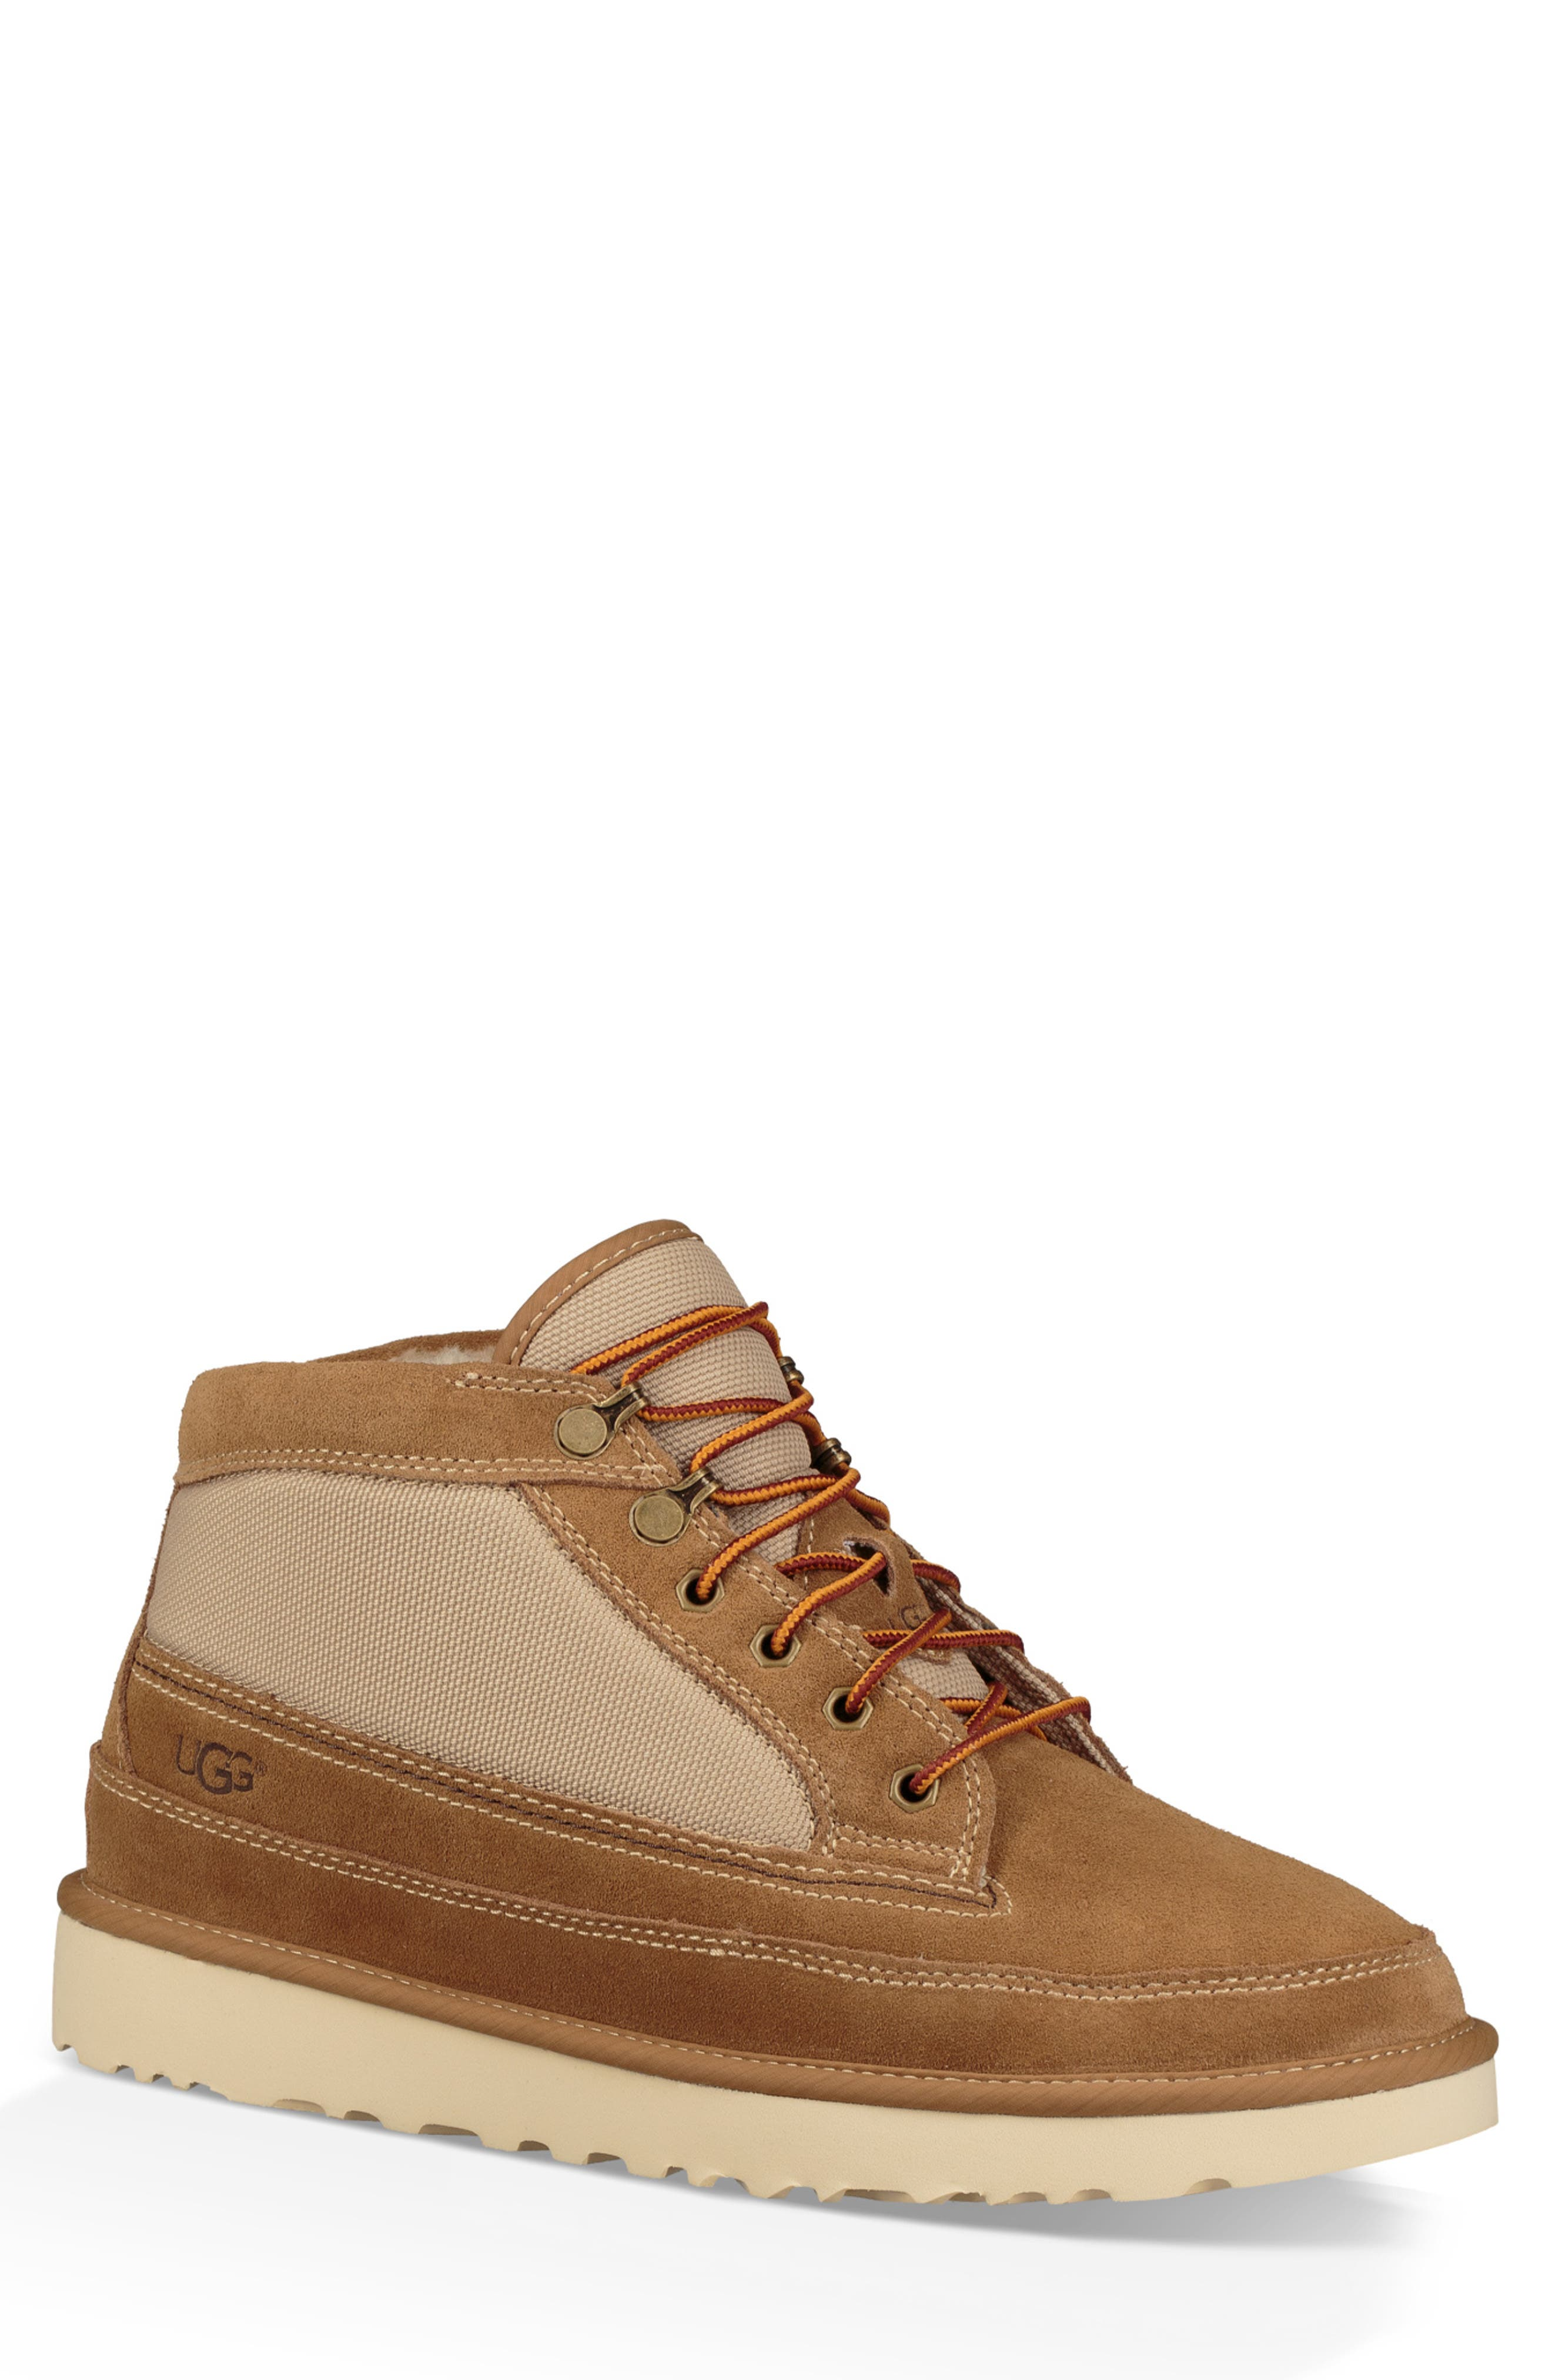 Highland Field Boot,                         Main,                         color, CHESTNUT